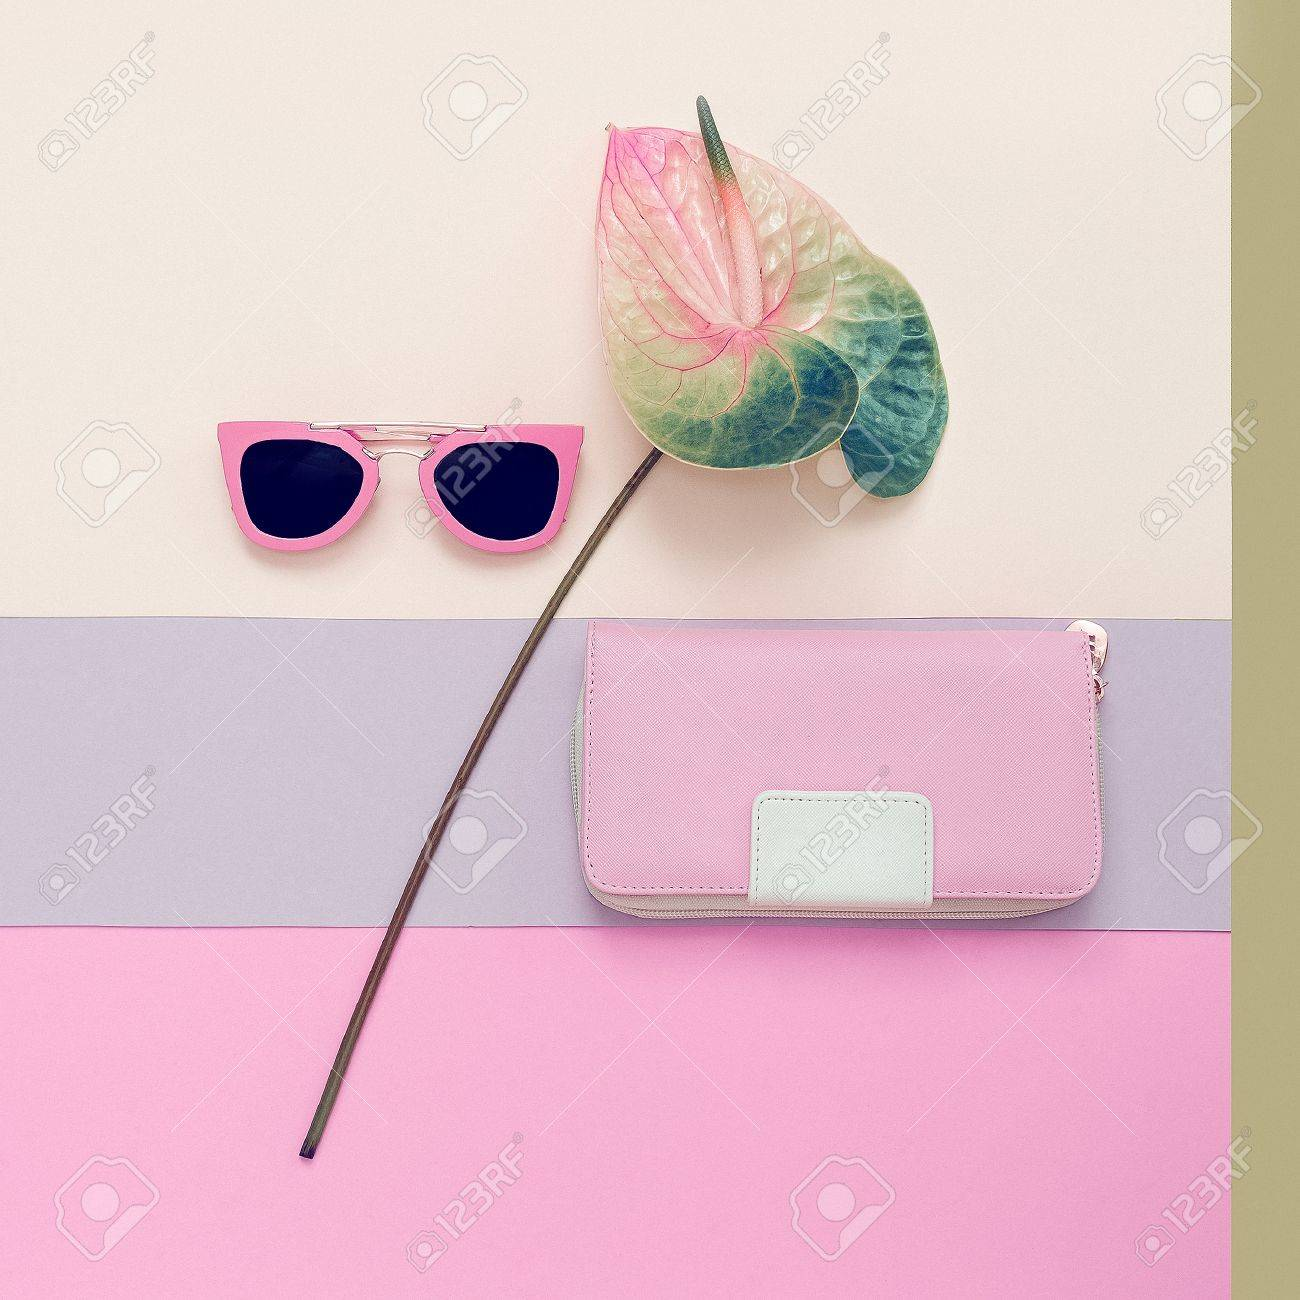 Ladies Fashion Accessories. Pink Clutch and sunglasses. Pastel colors Trend - 74068642